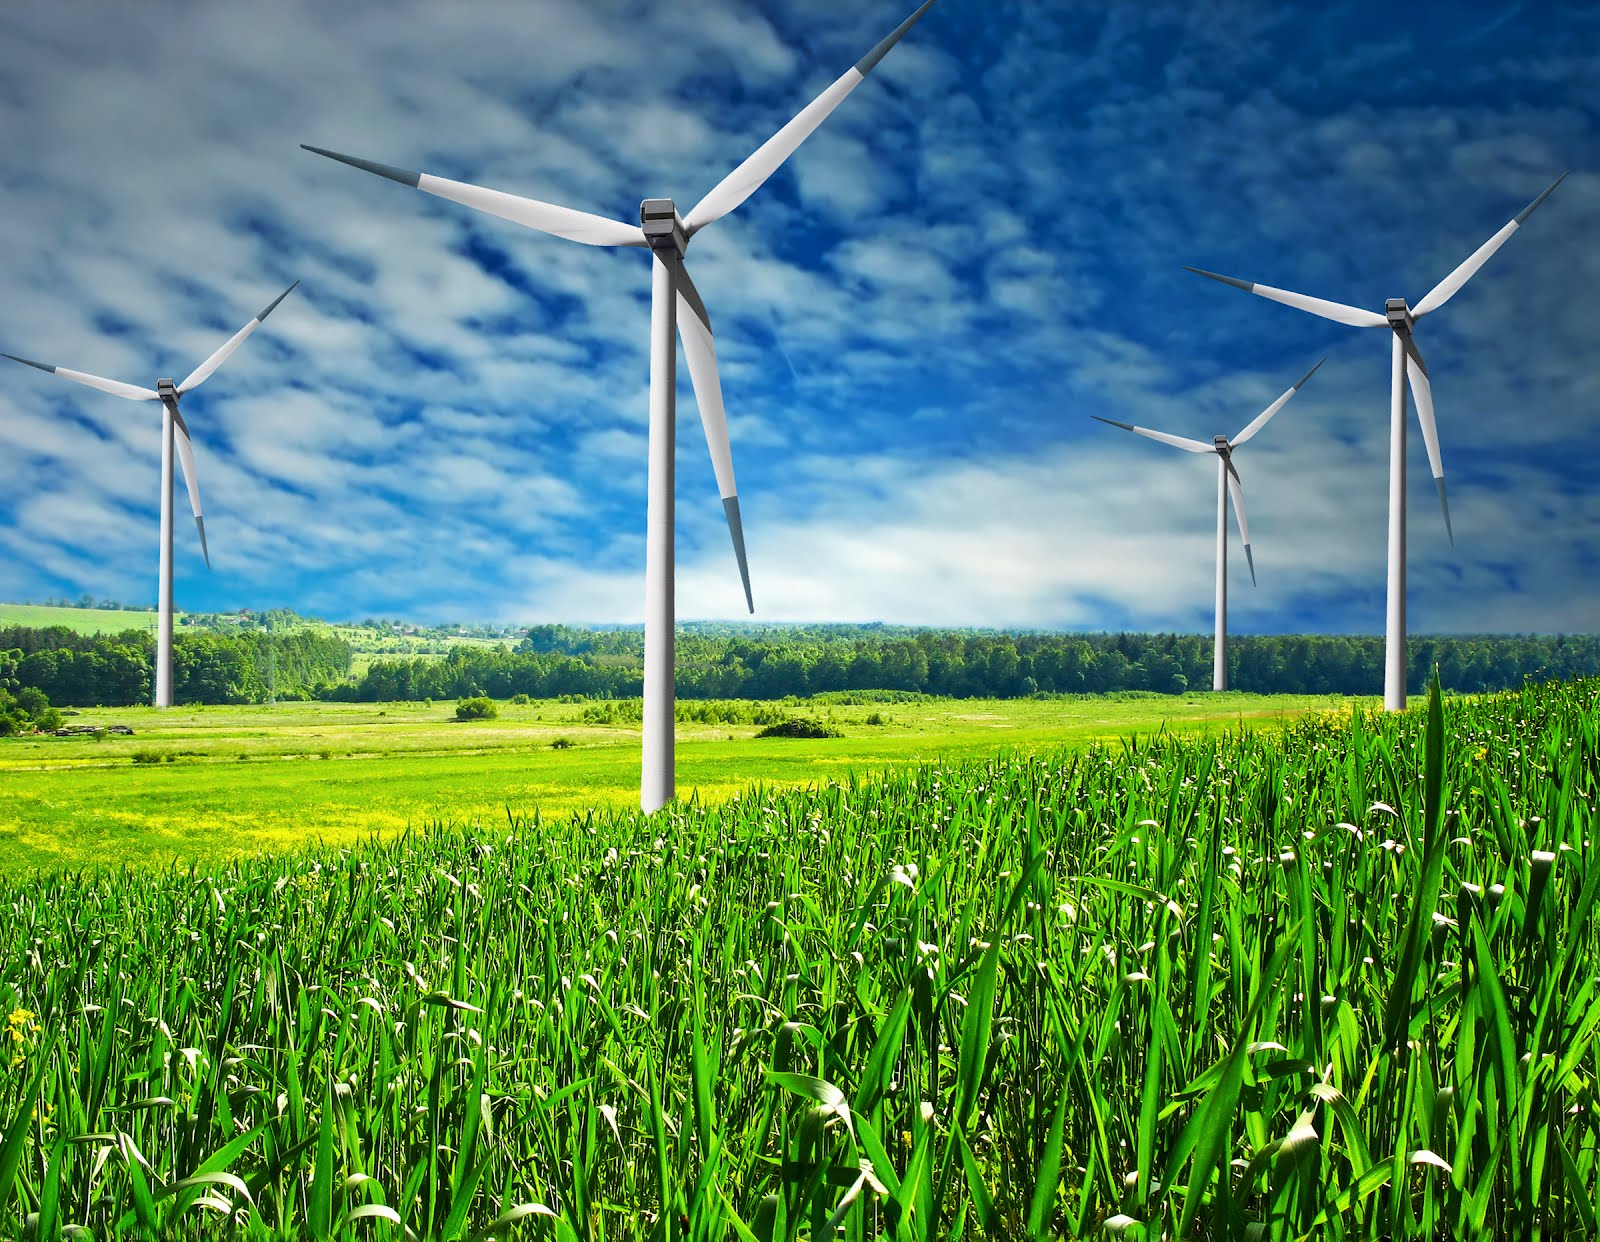 RedVector Green Blog: New Wind Power Course + 3 New Webinars